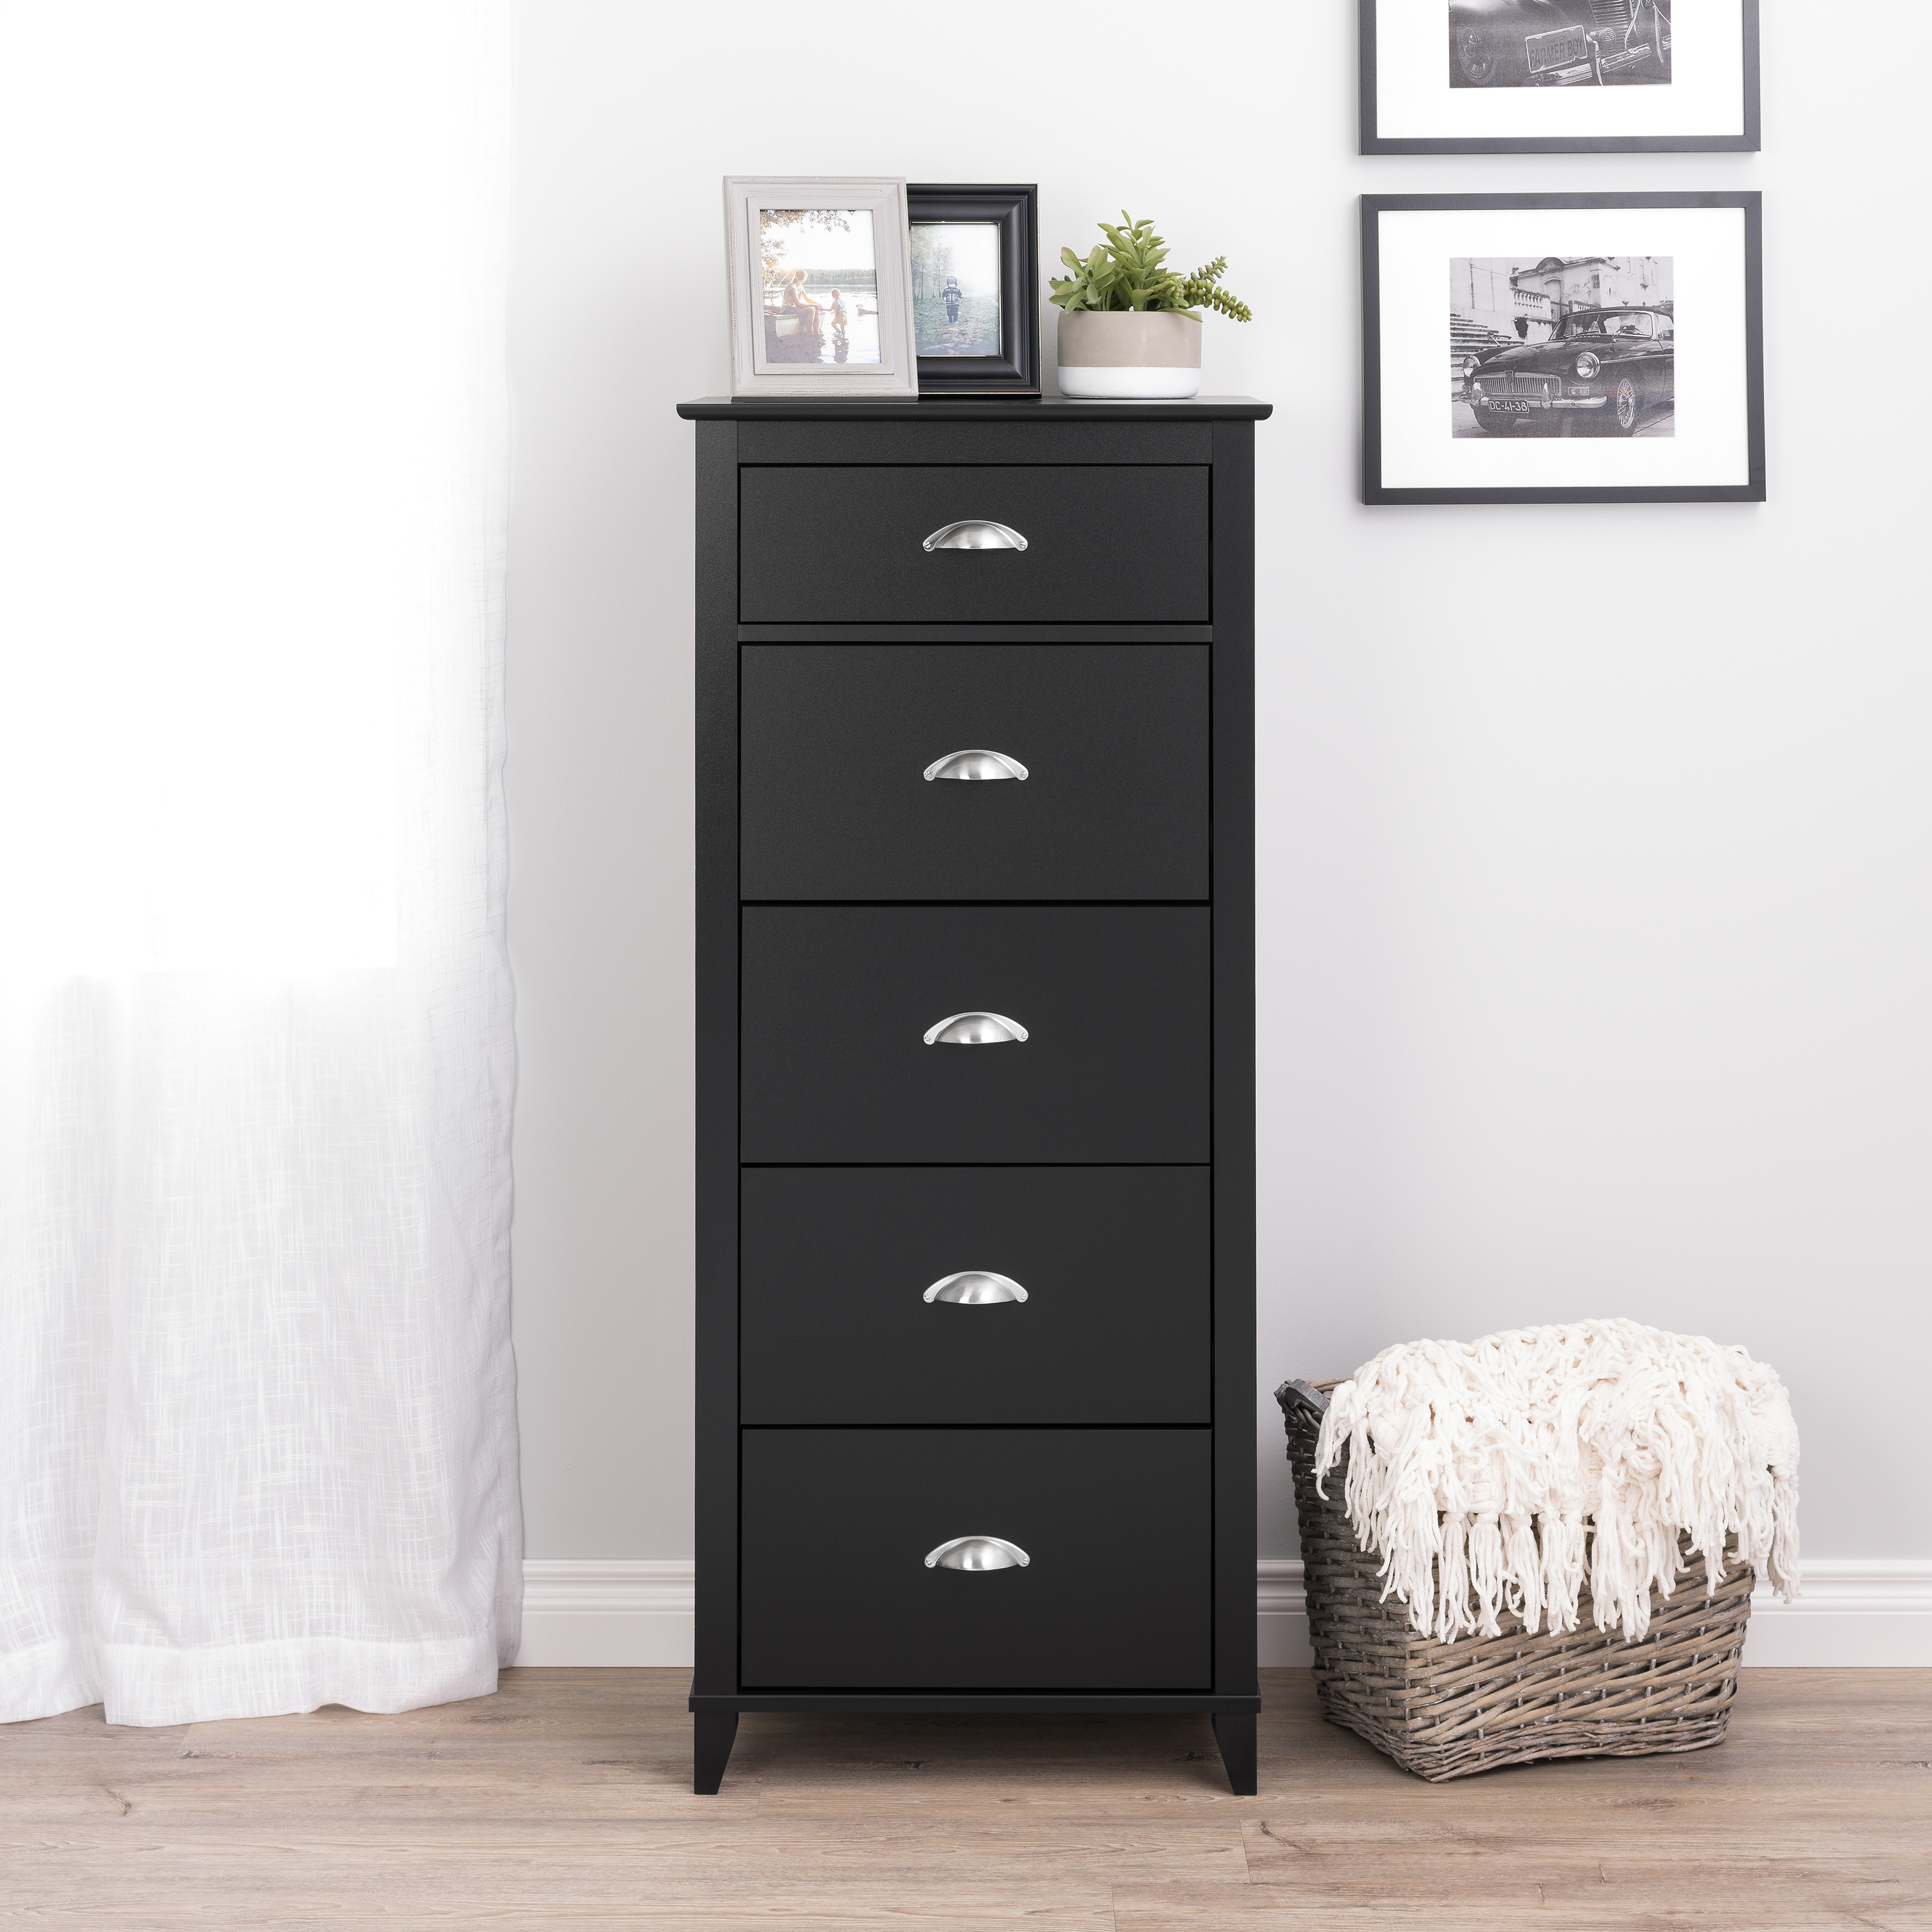 Yaletown 5 Drawer Tall Chest Espresso Lingerie Cabinet Drawers